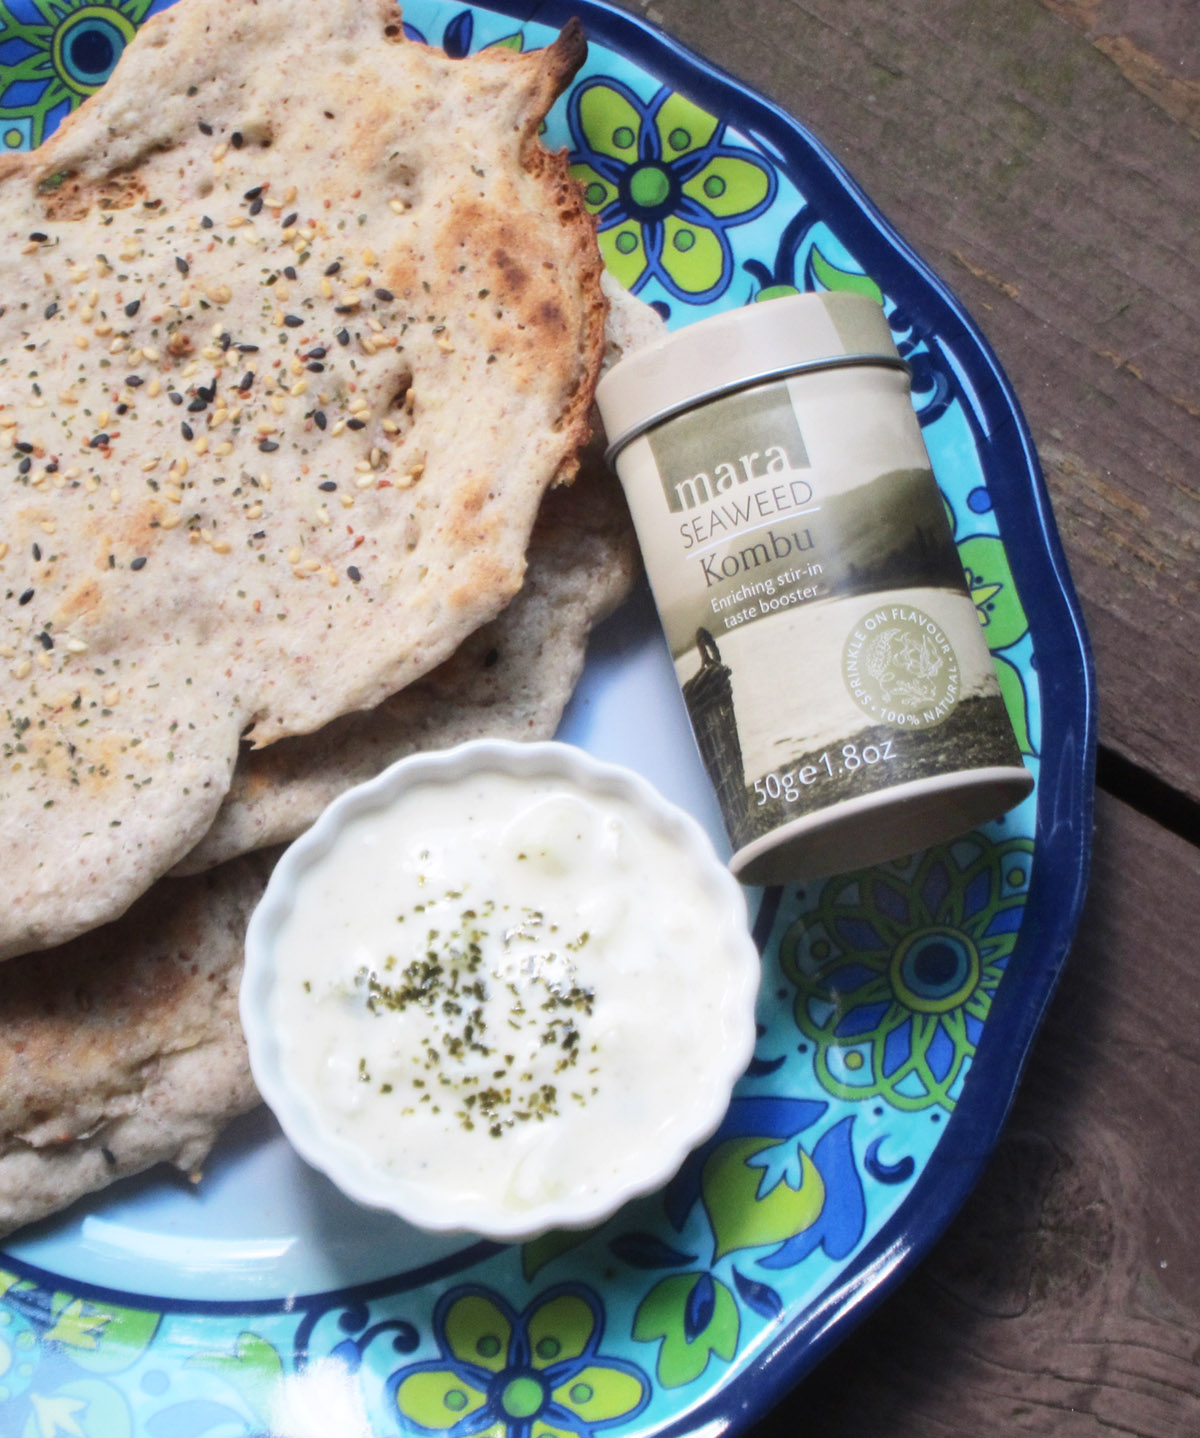 Grilled Millet Flatbreads with Sesame Seed and Kombu Seaweed Sprinkles